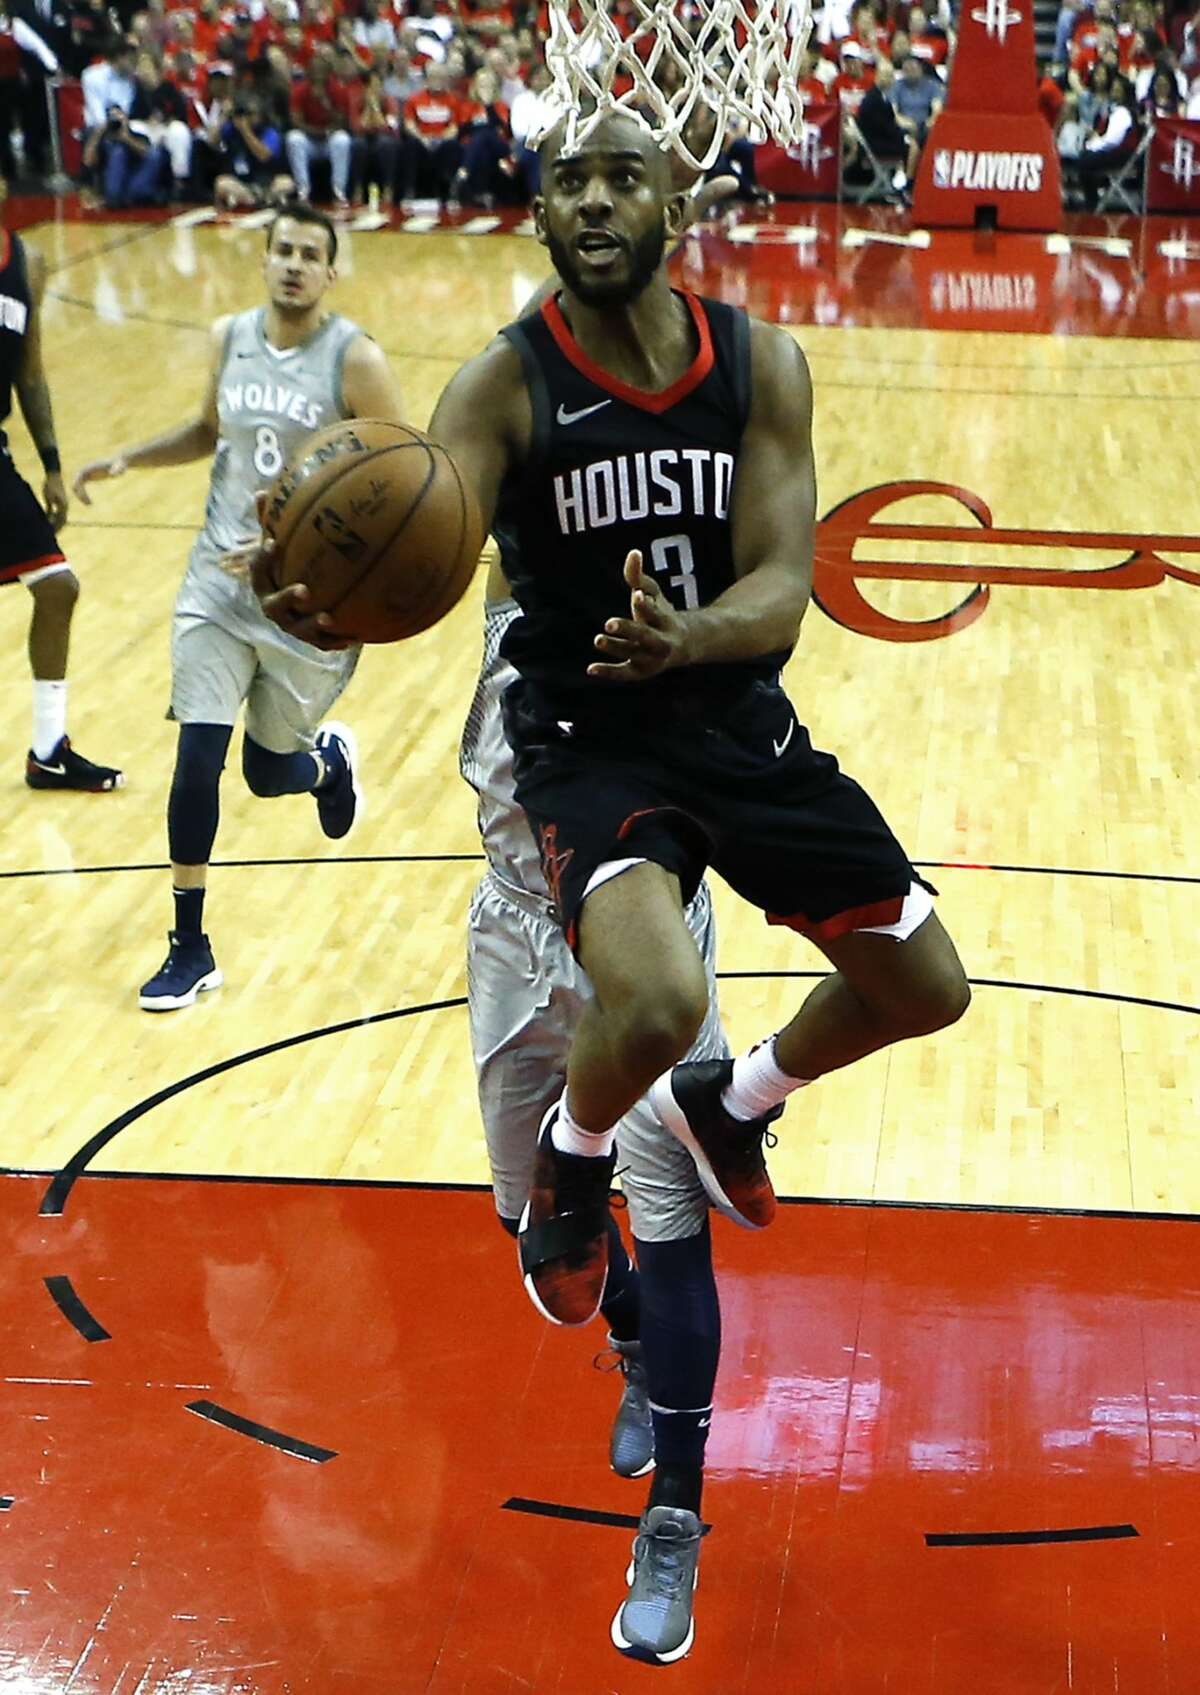 Houston Rockets guard Chris Paul (3) drives to the basket for a layup against the Minnesota Timberwolvesm during the second half of Game 2 of an NBA basketball first-round playoff series at Toyota Center on Wednesday, April 18, 2018, in Houston. ( Brett Coomer / Houston Chronicle )